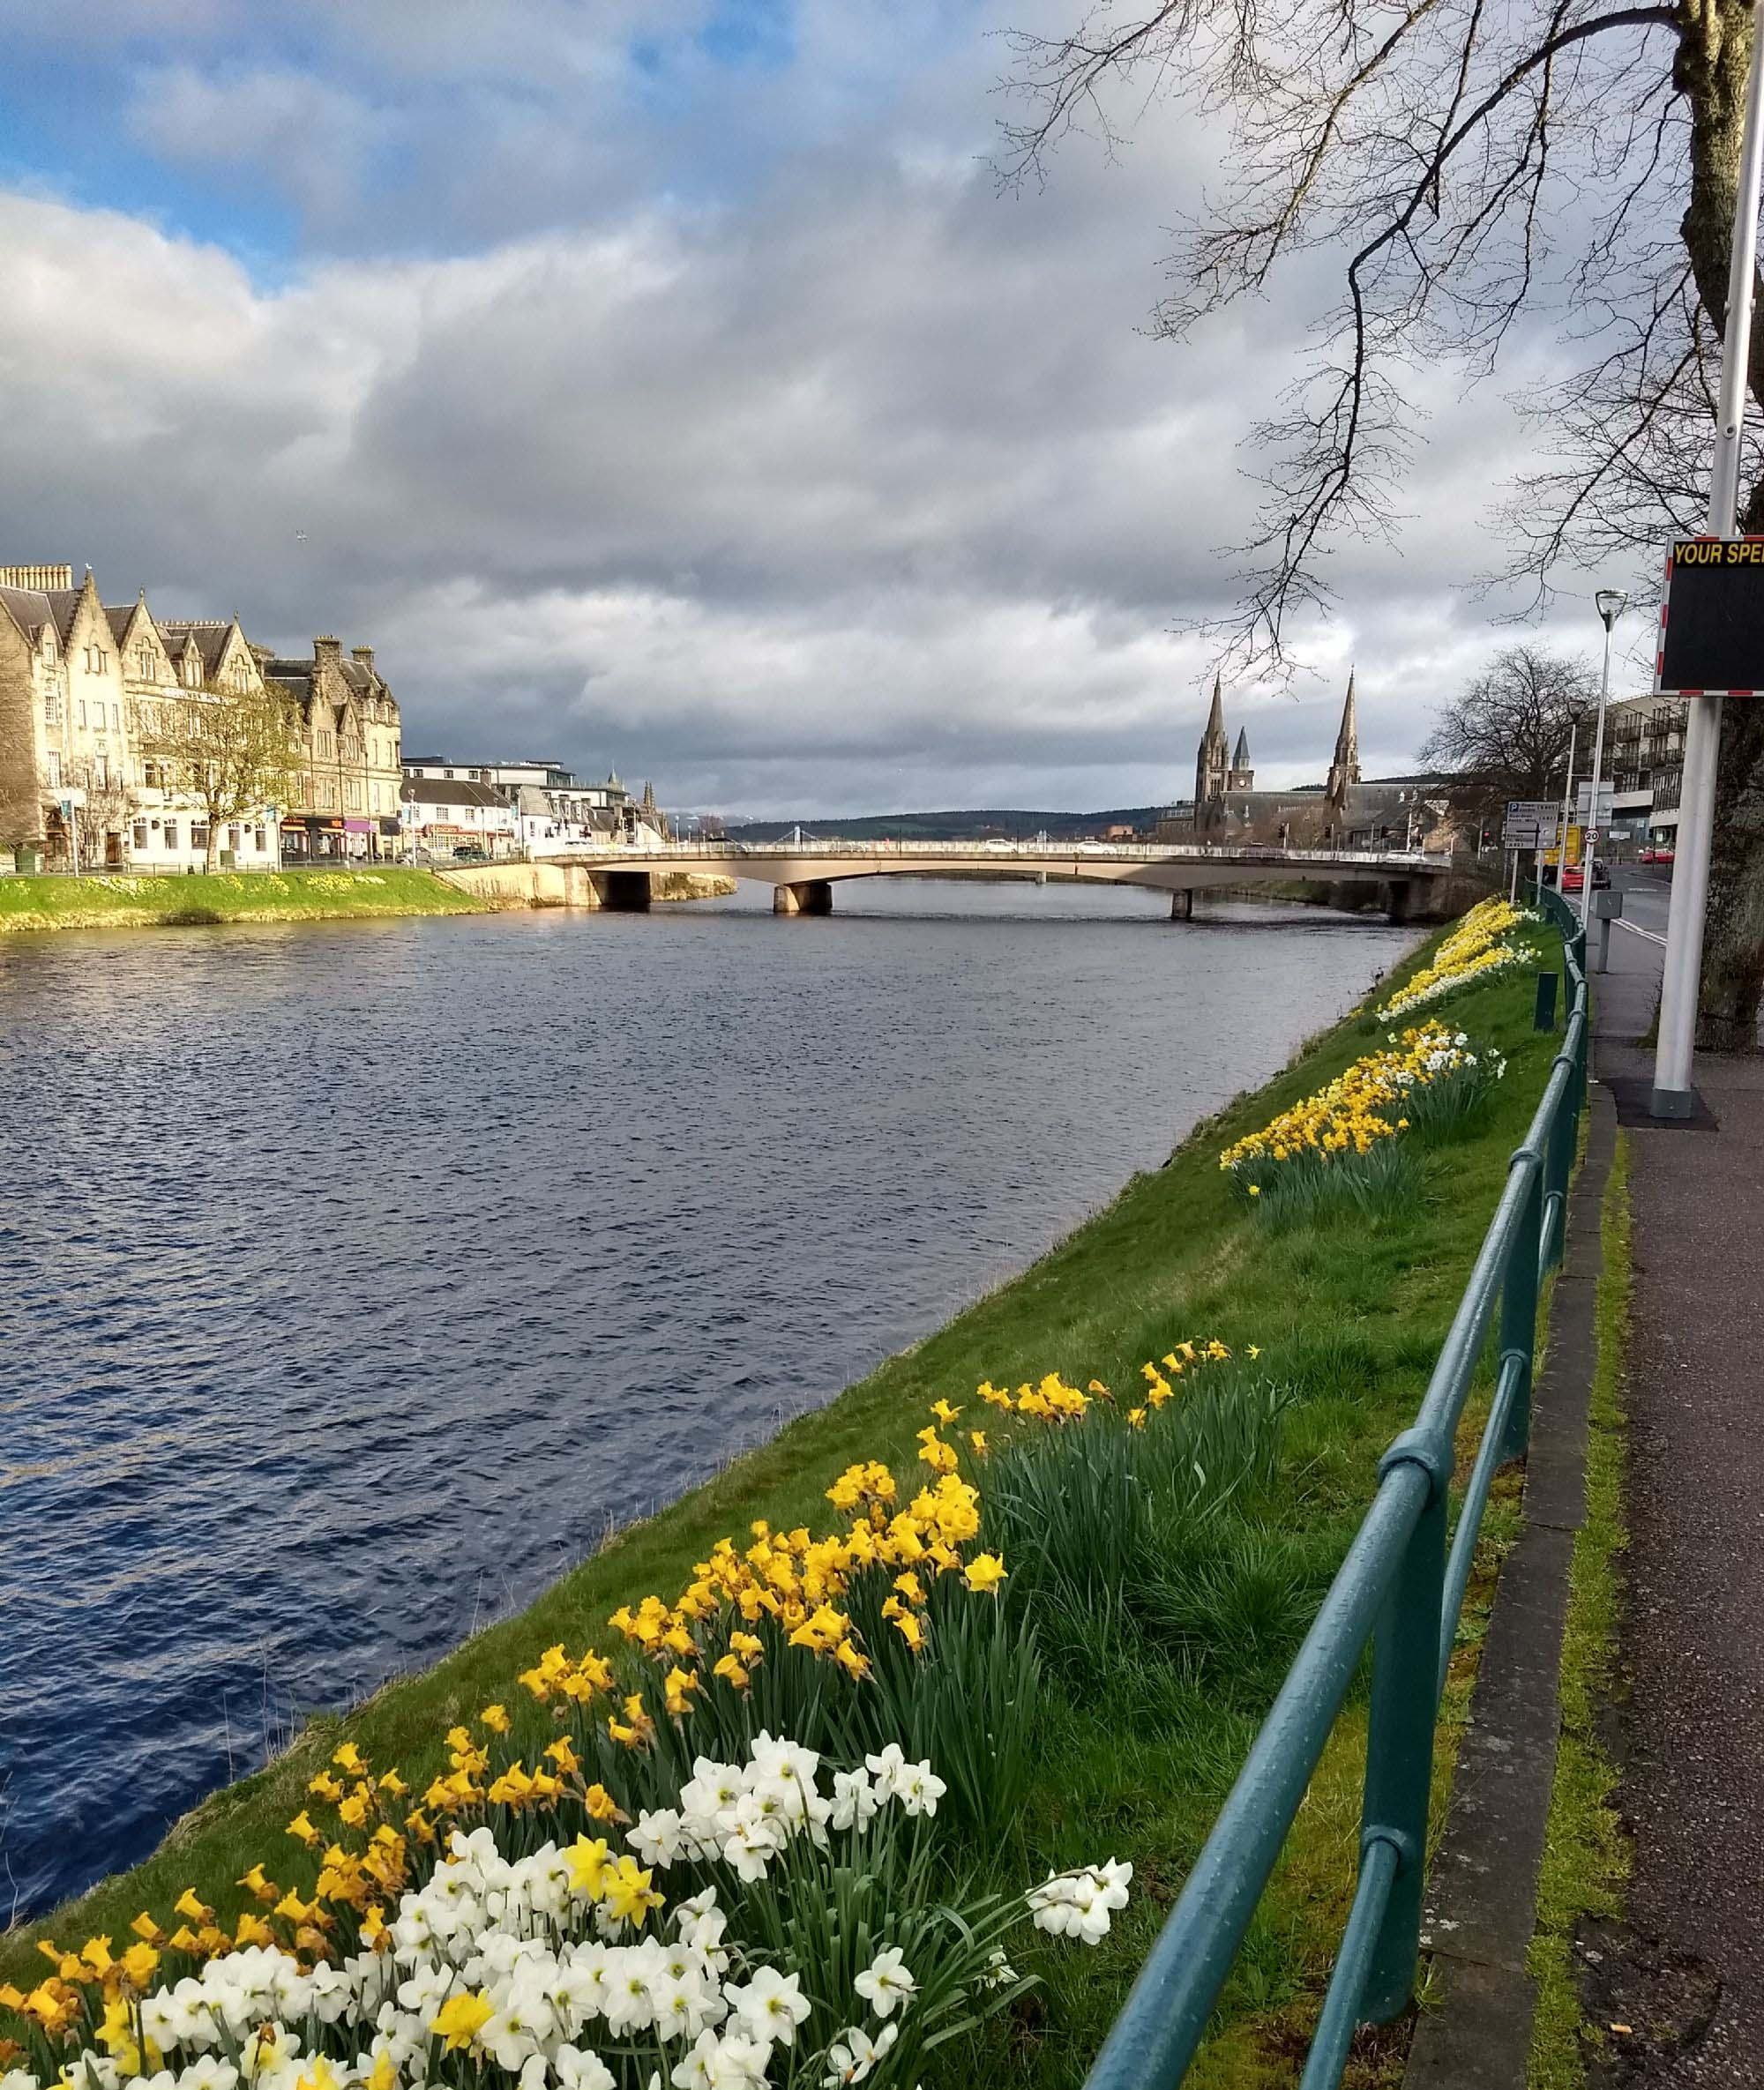 Morning walk in Inverness